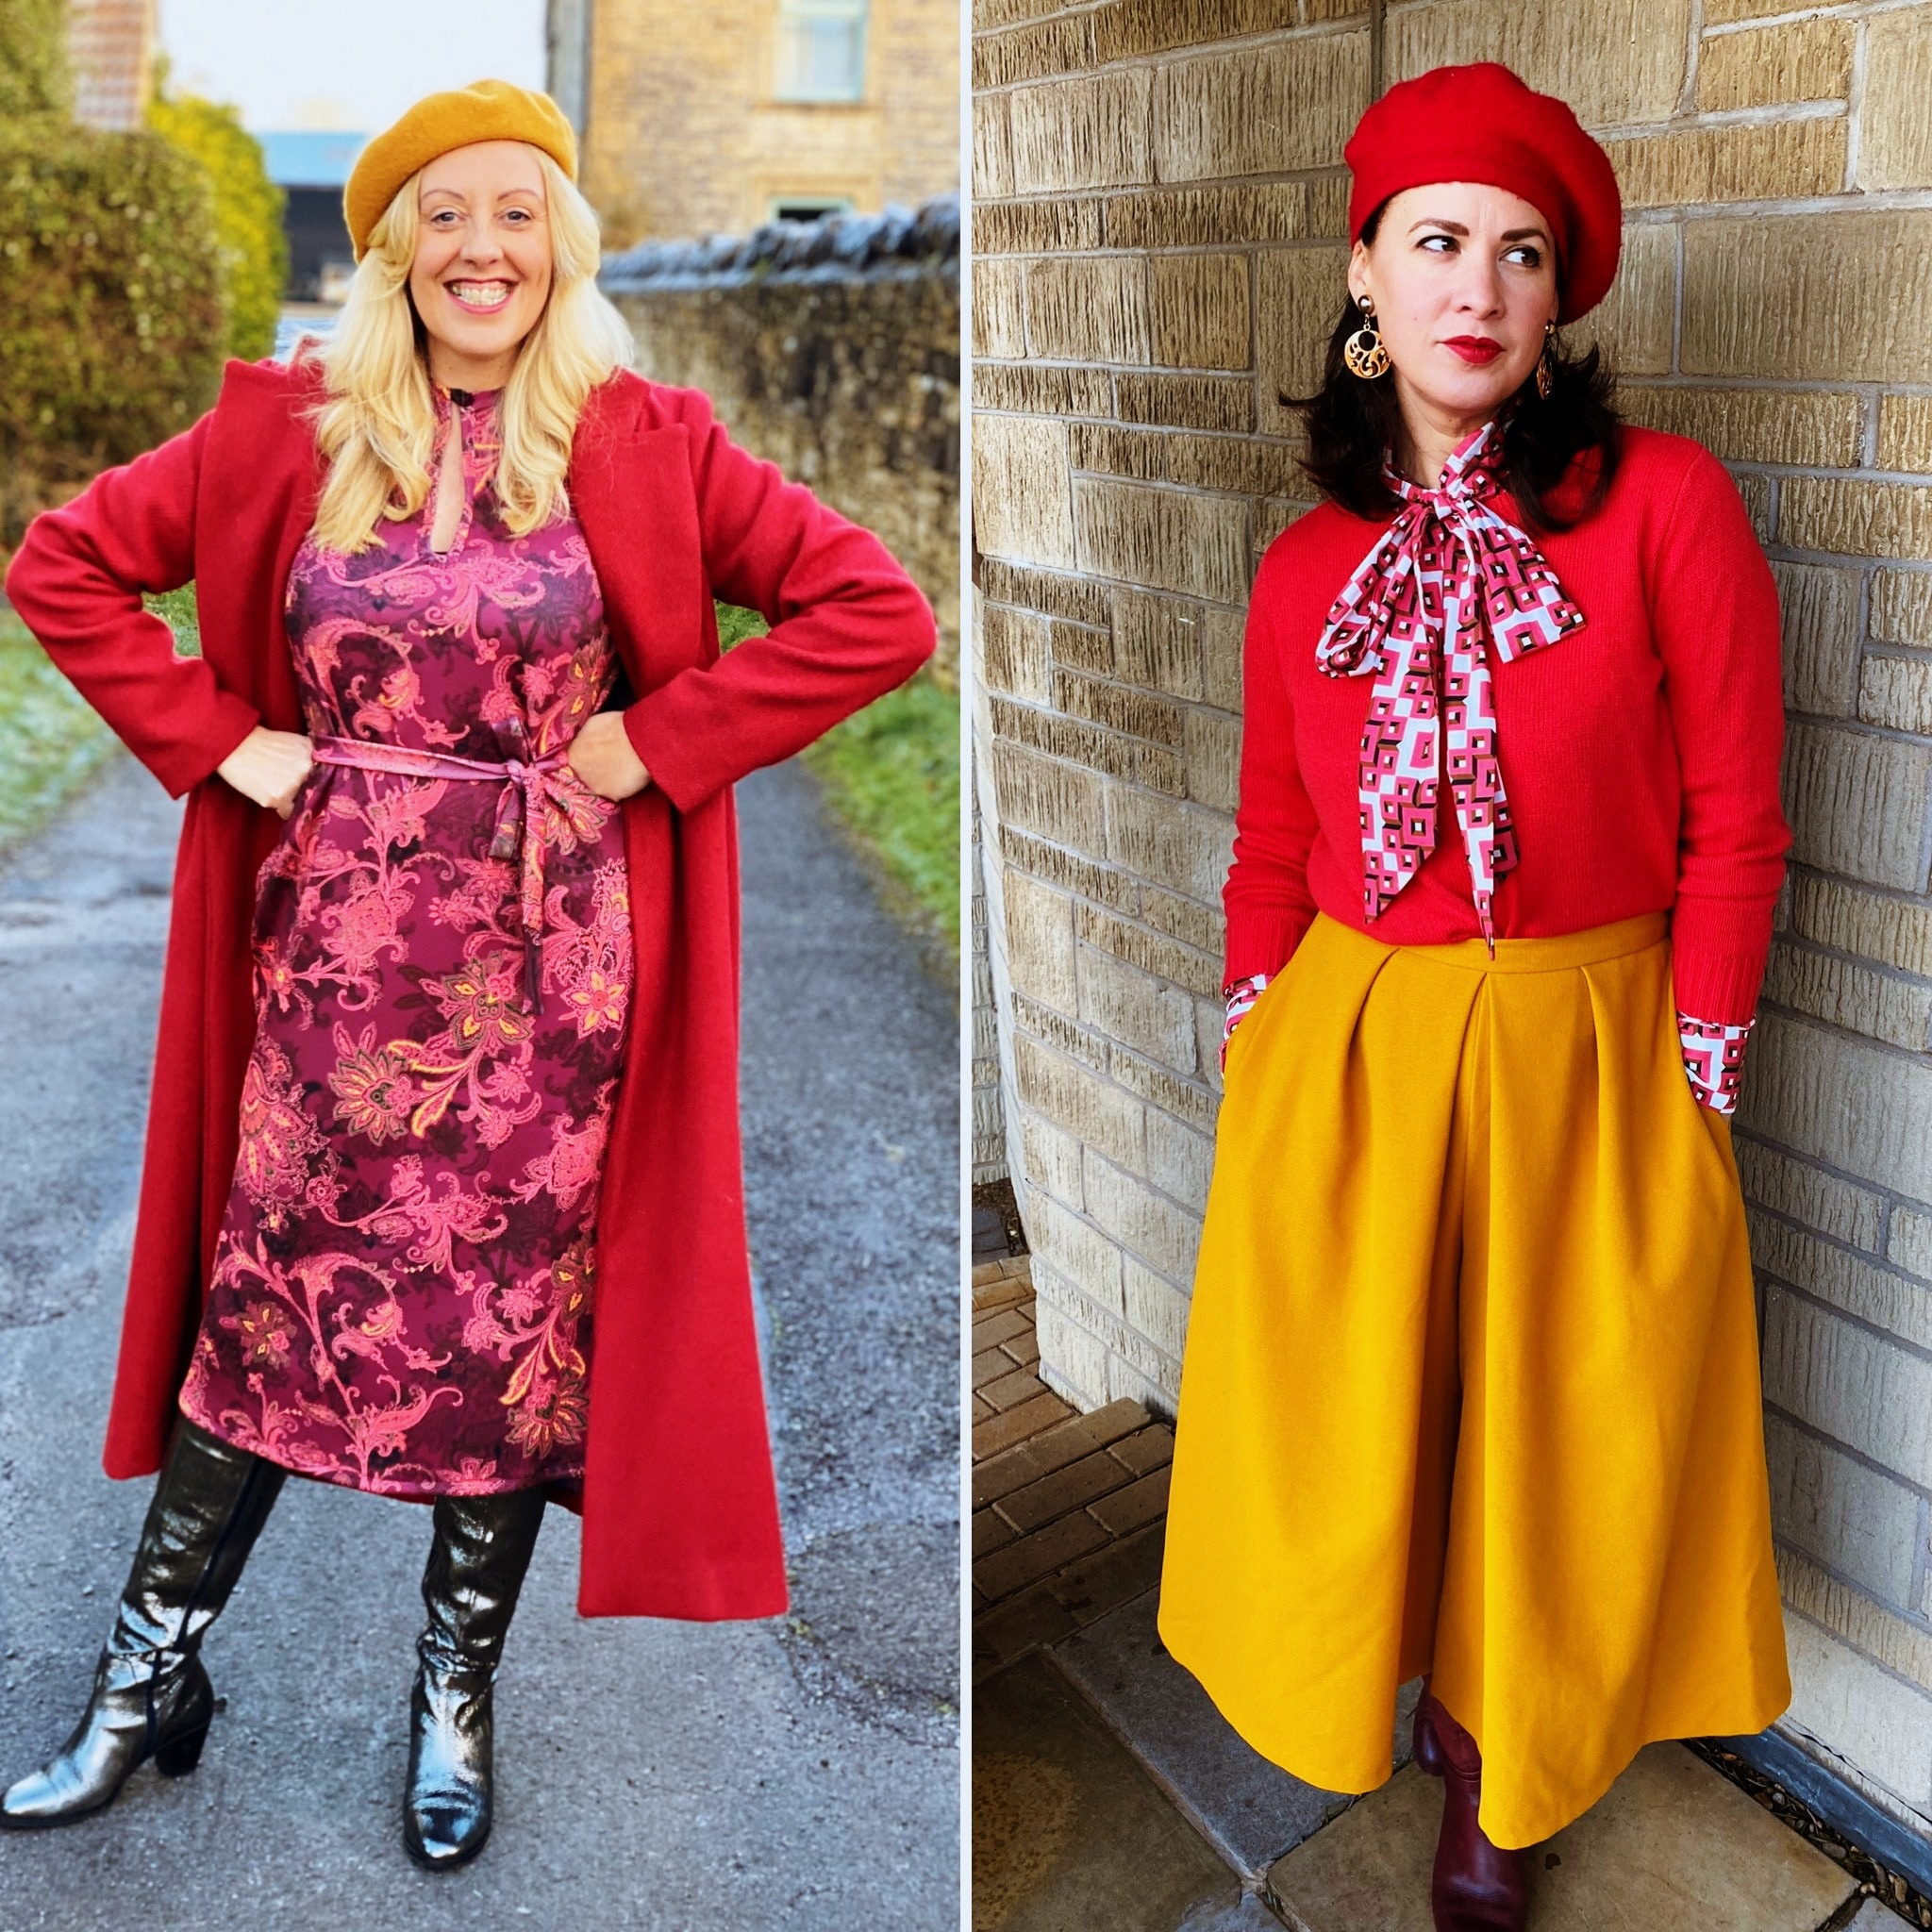 sewing-style fashion-sewing inspiration rachel-nikki